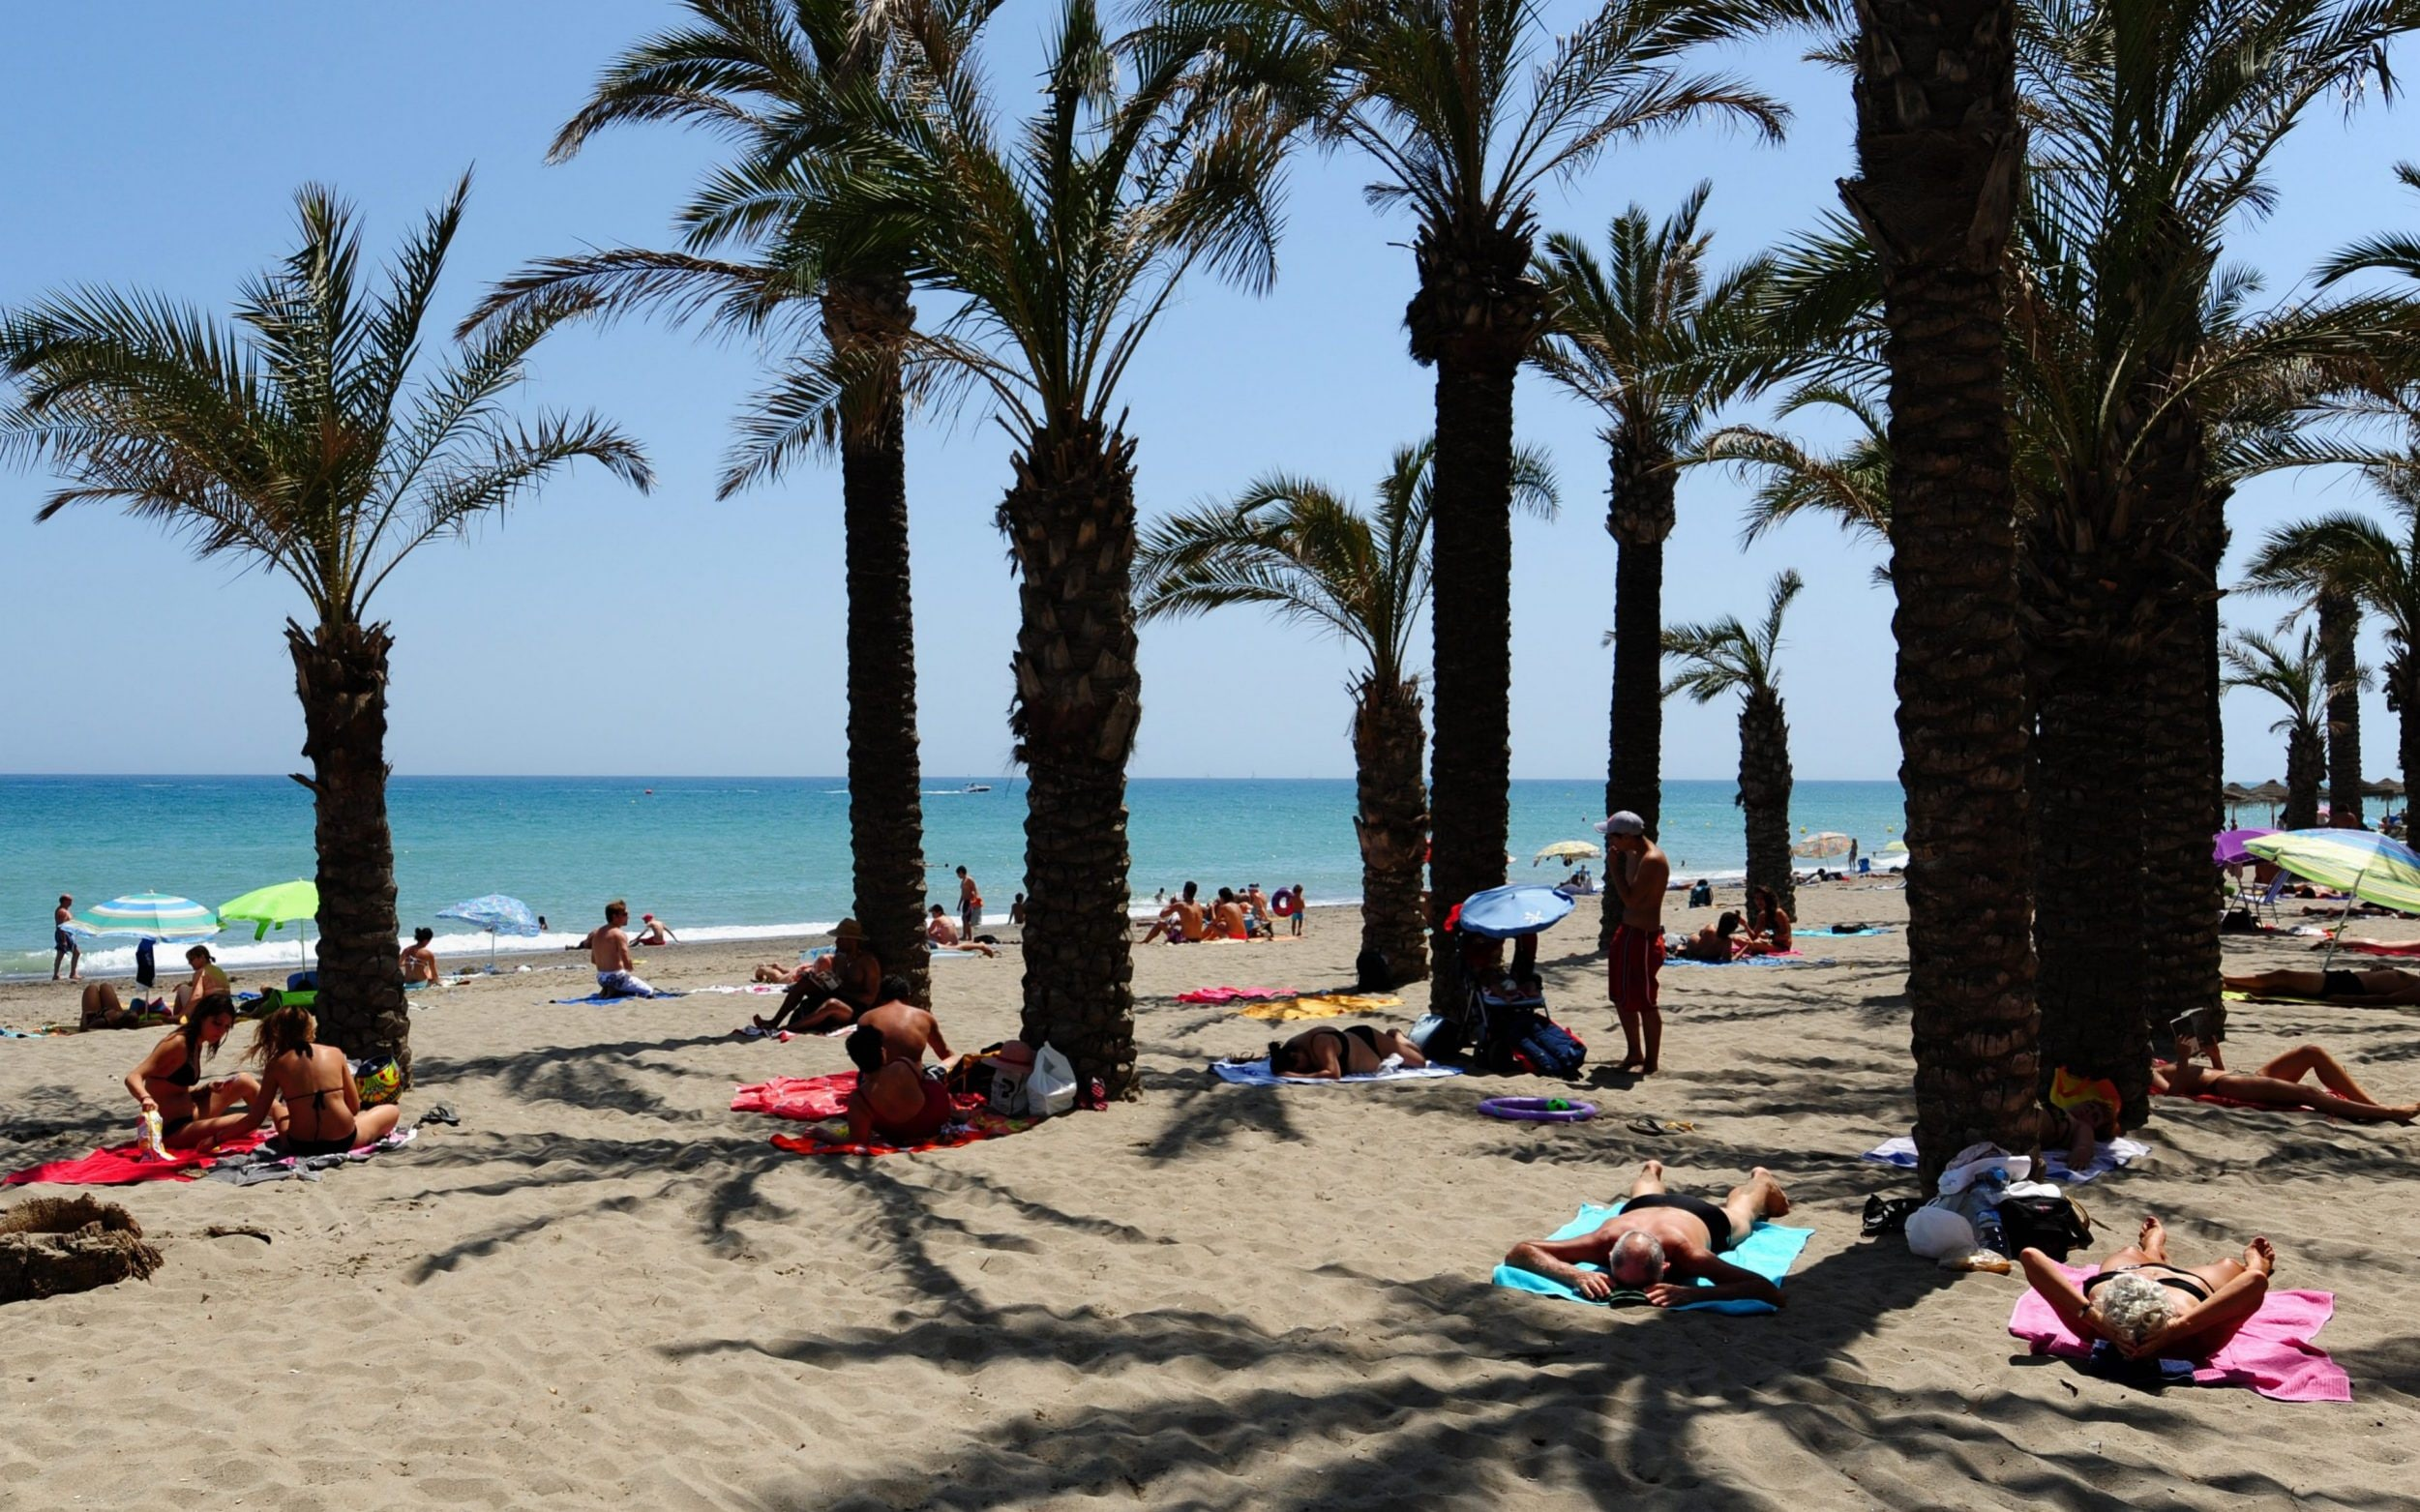 Three members of British family die after drowning in swimming pool at their Spanish hotel